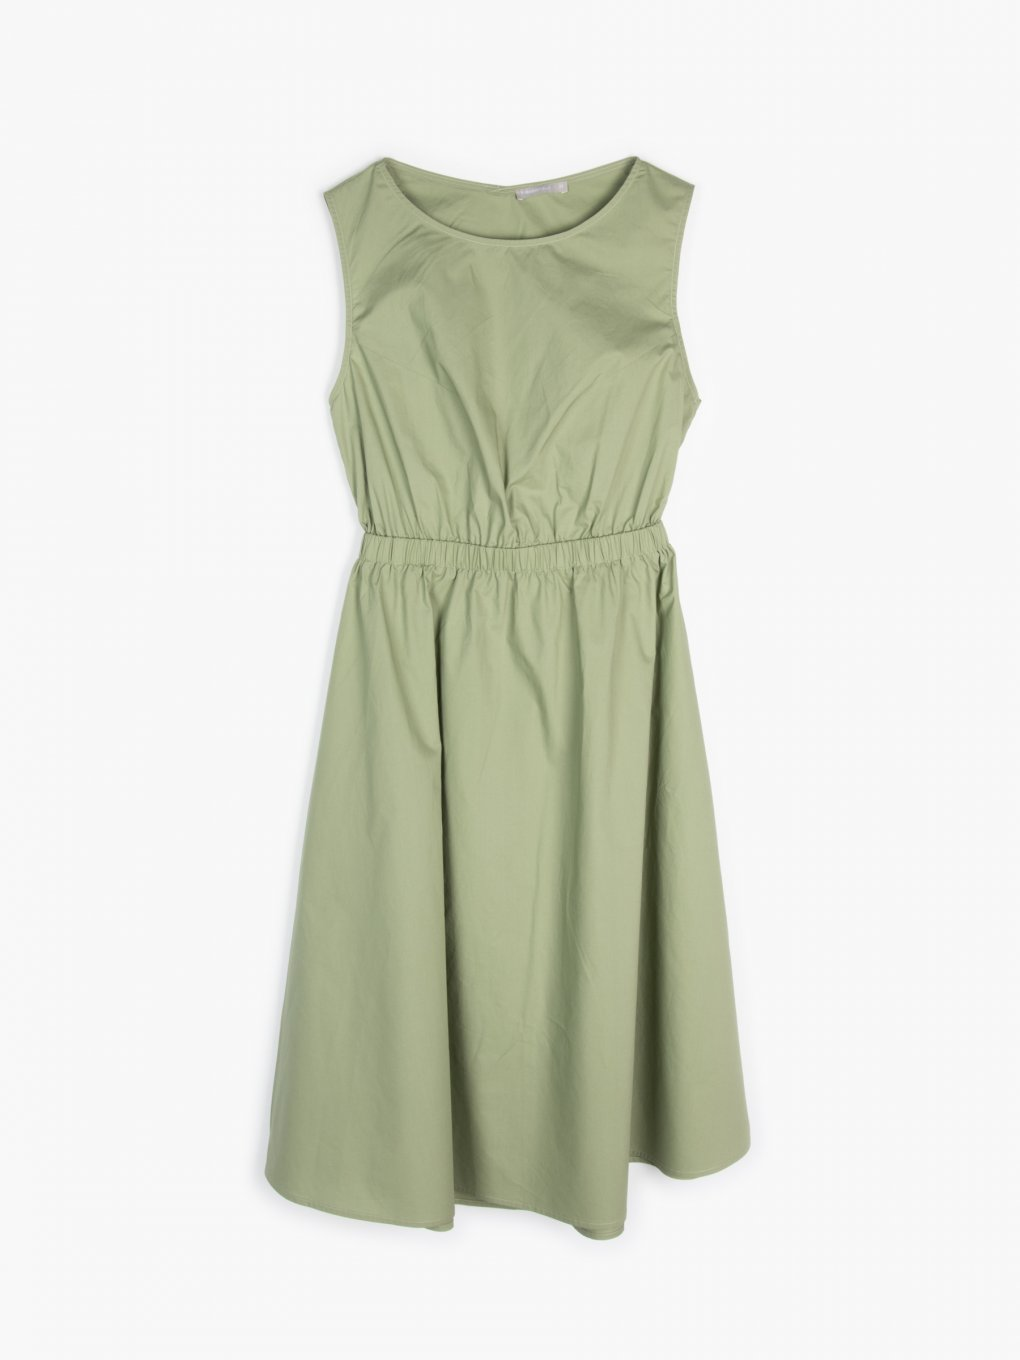 Cotton dress with back cut out